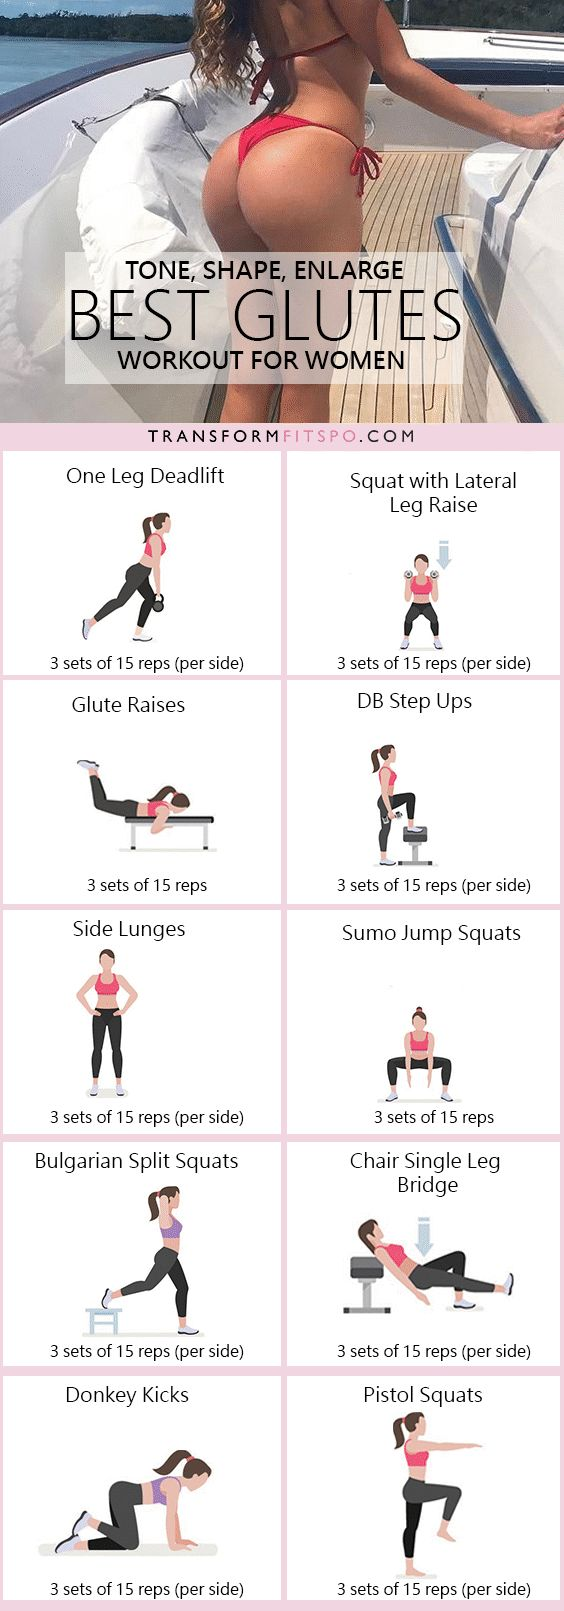 Repin and share if you enjoyed this killer bum lifting workout! Full exercise descriptions can be found on the article.(Full Body Fitness Challenge)